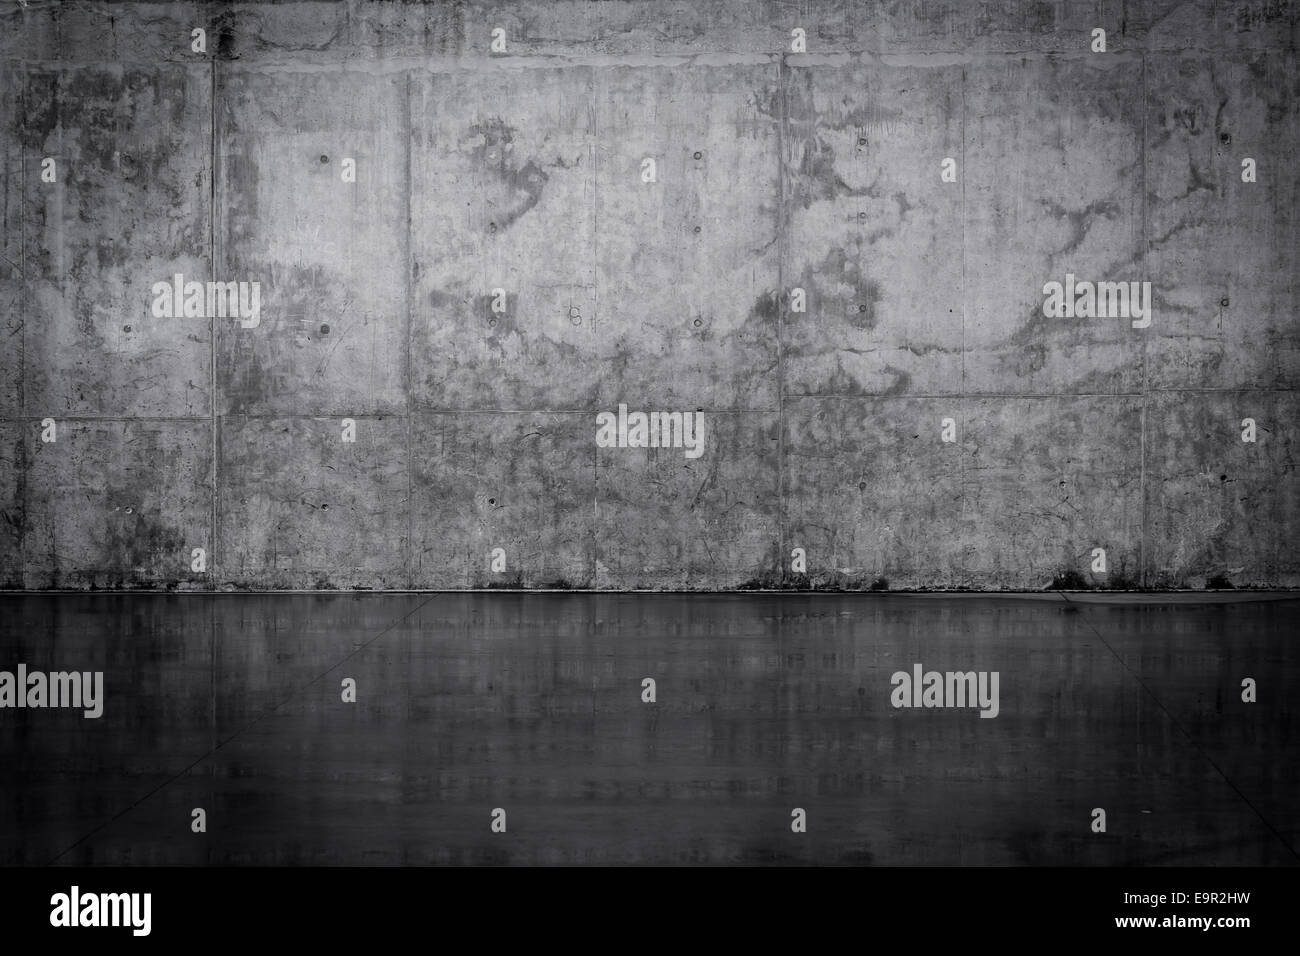 Dark Concrete Floor Texture grungy dark concrete wall and wet floor stock photo, royalty free